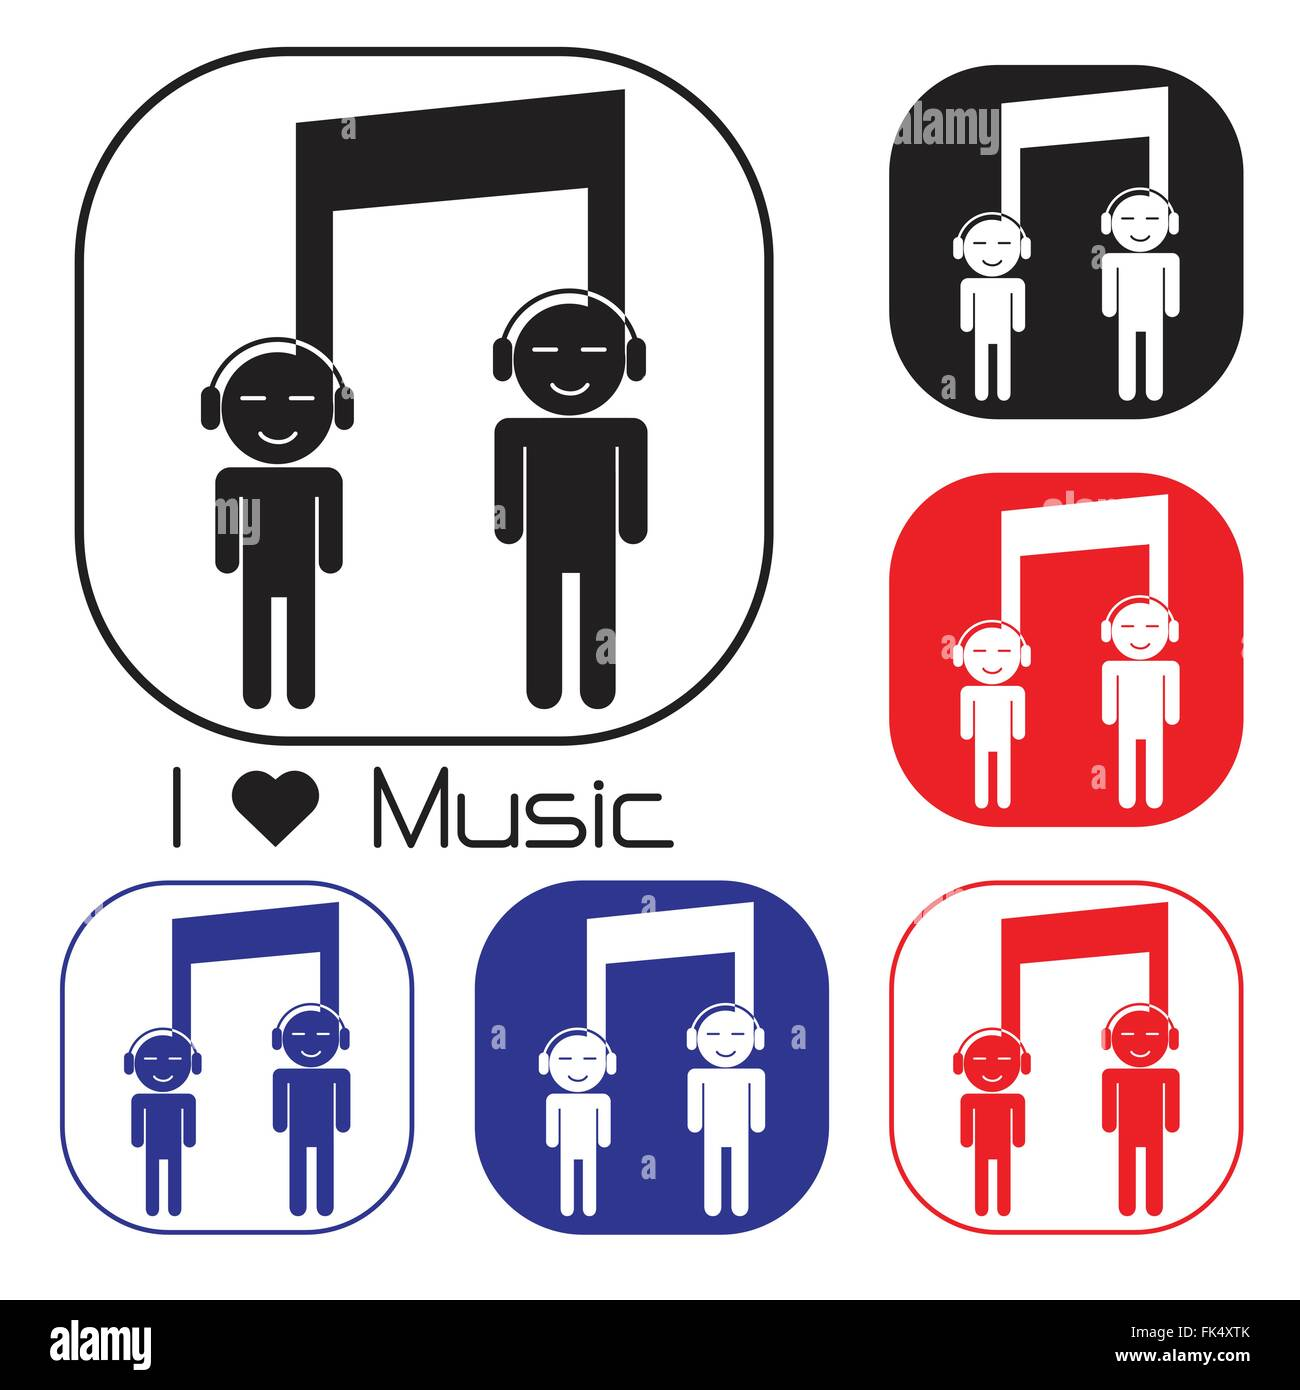 Creative Music Note Sign Icon And Silhouette People Symbol Musical